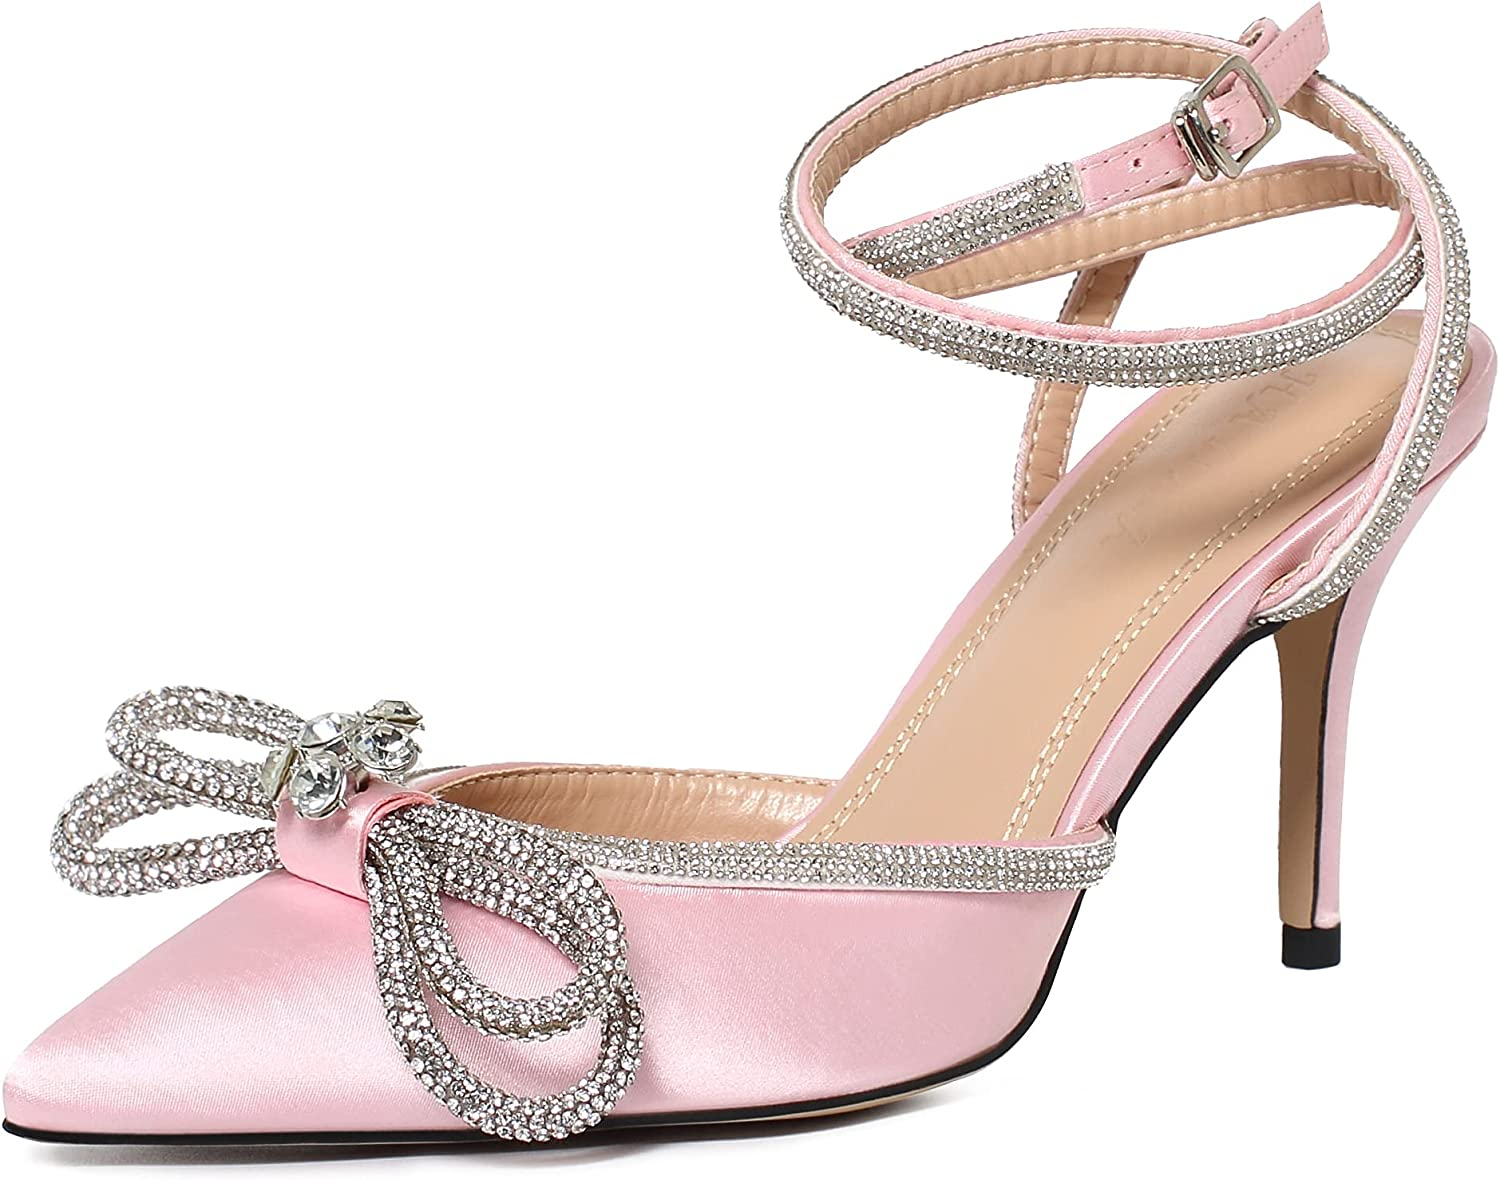 Women's High Heeled Sandals Pointed Toe Double Crystal Bow Glitter Satin Backless Ankle Straps Buckle Stiletto Slip On Pumps